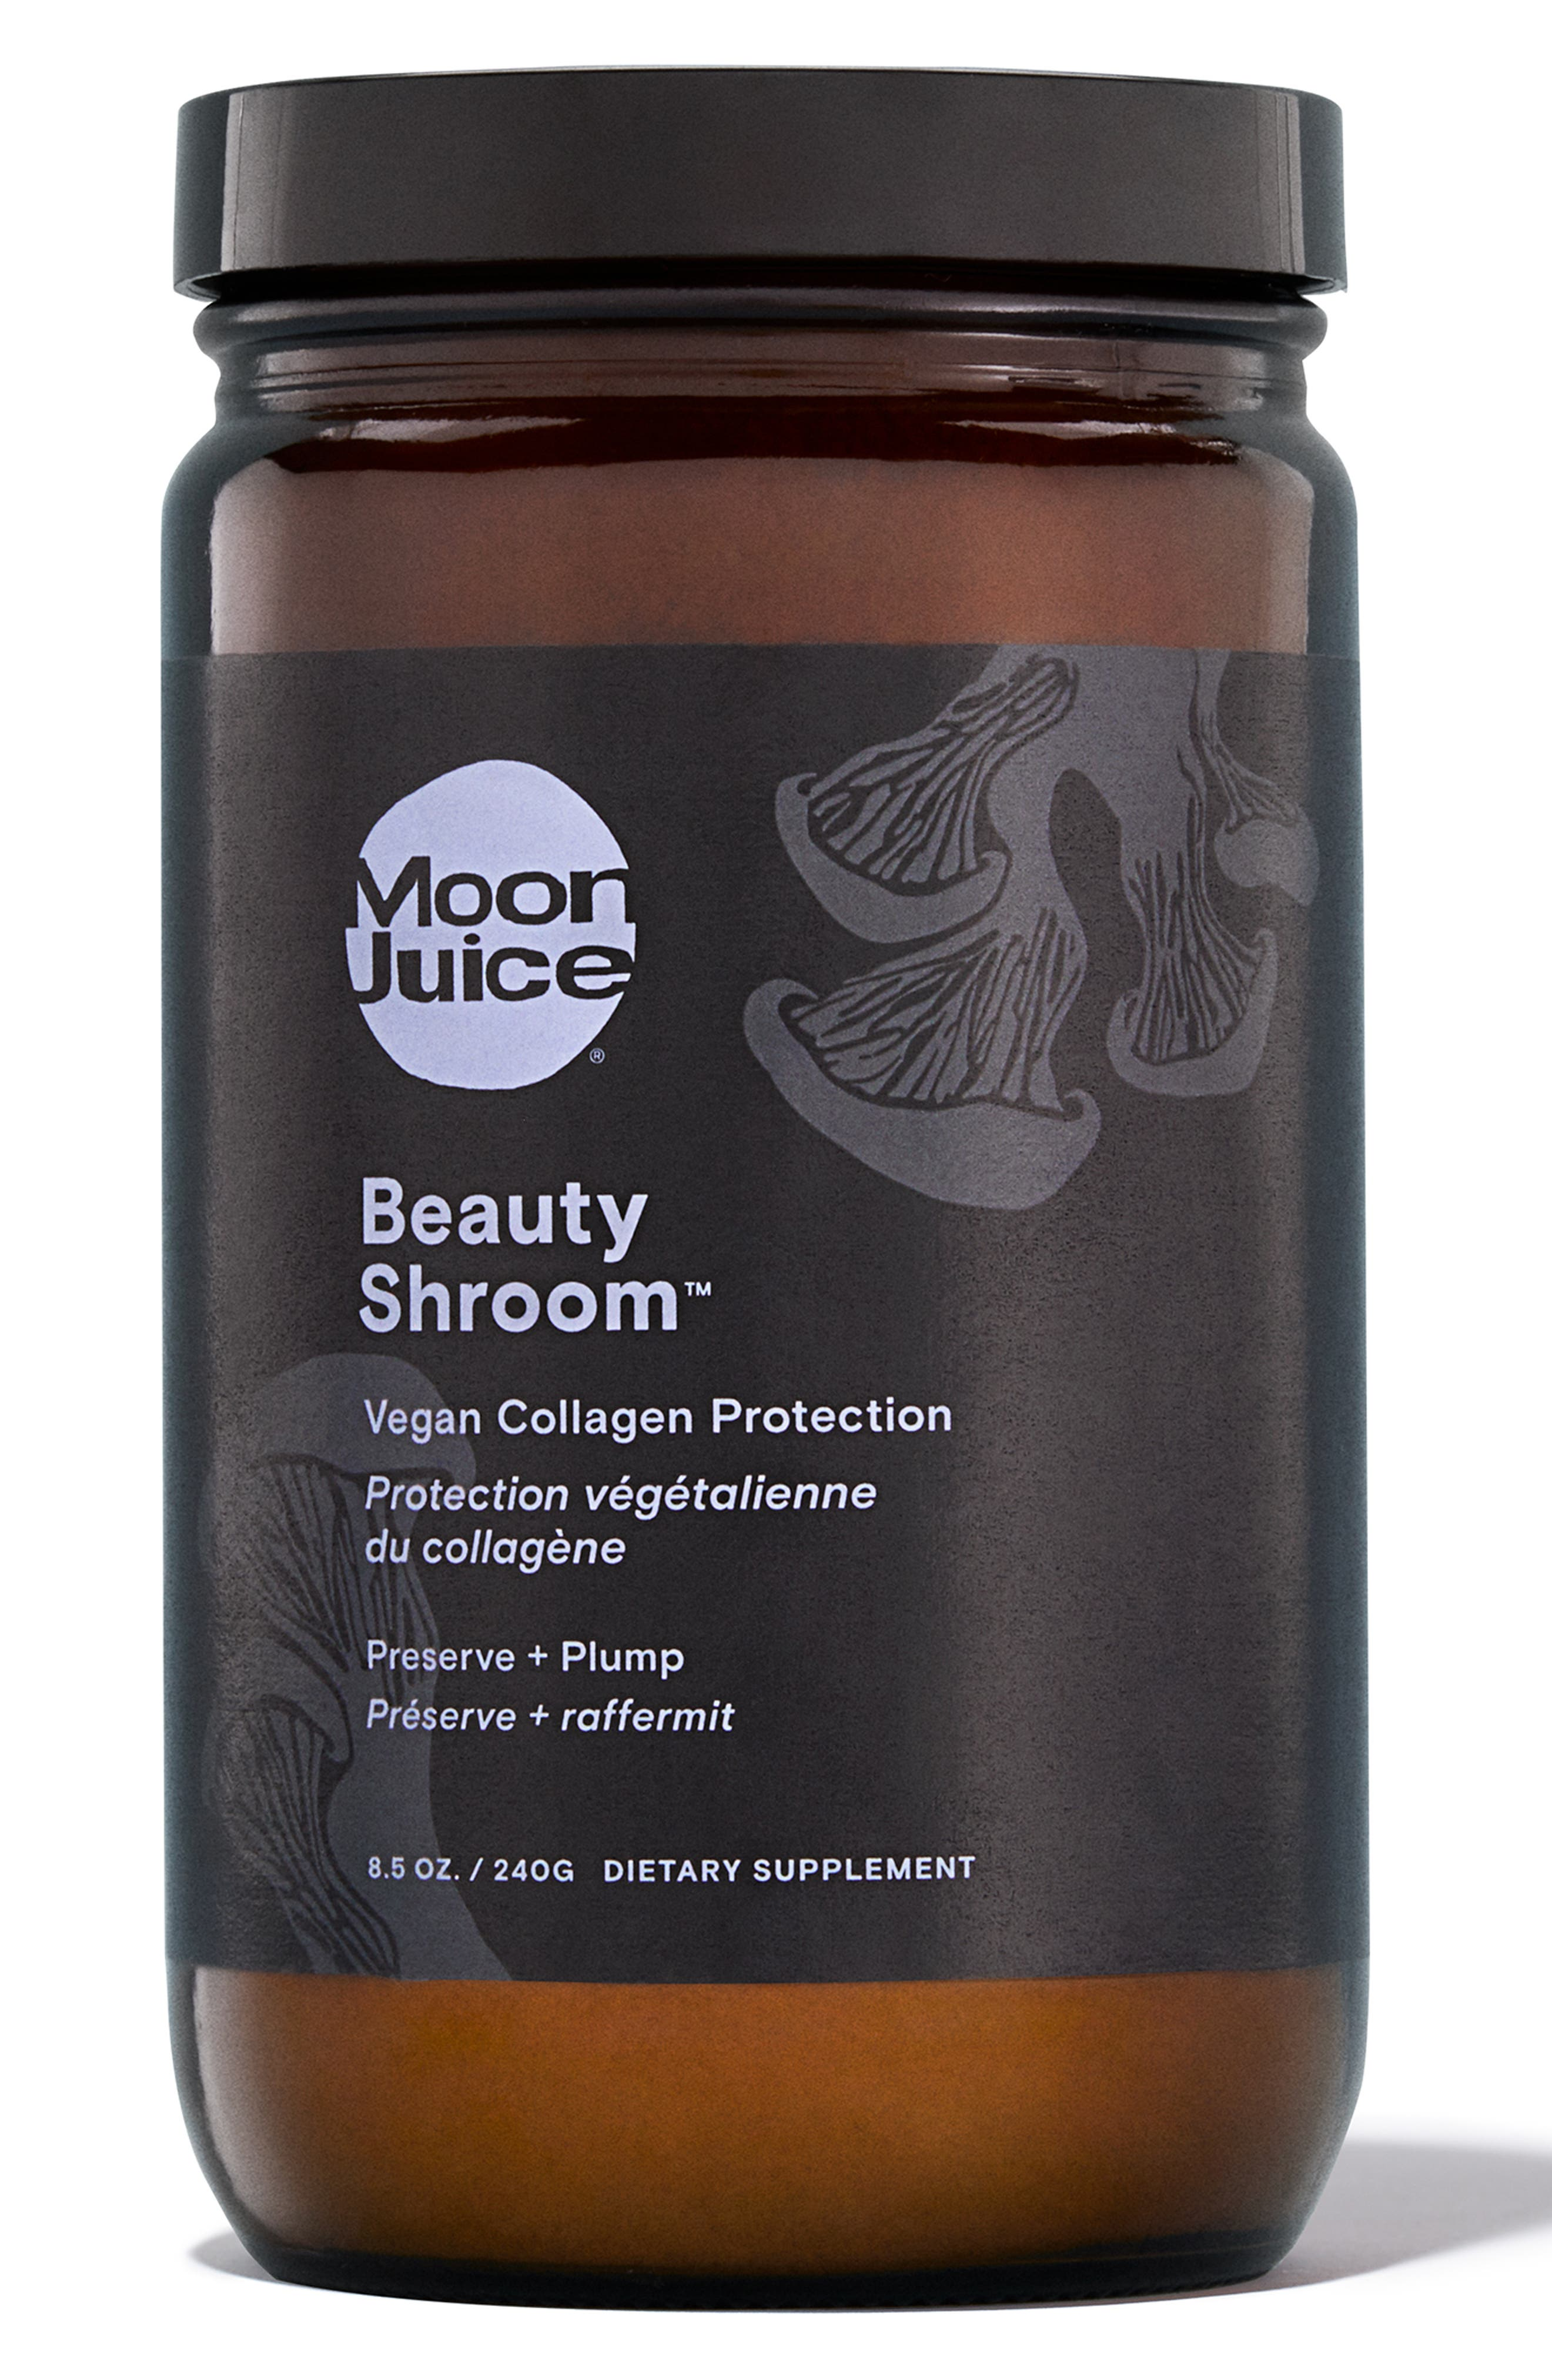 Beauty Shroom Vegan Collagen Protection Dietary Supplement, Main, color, NO COLOR